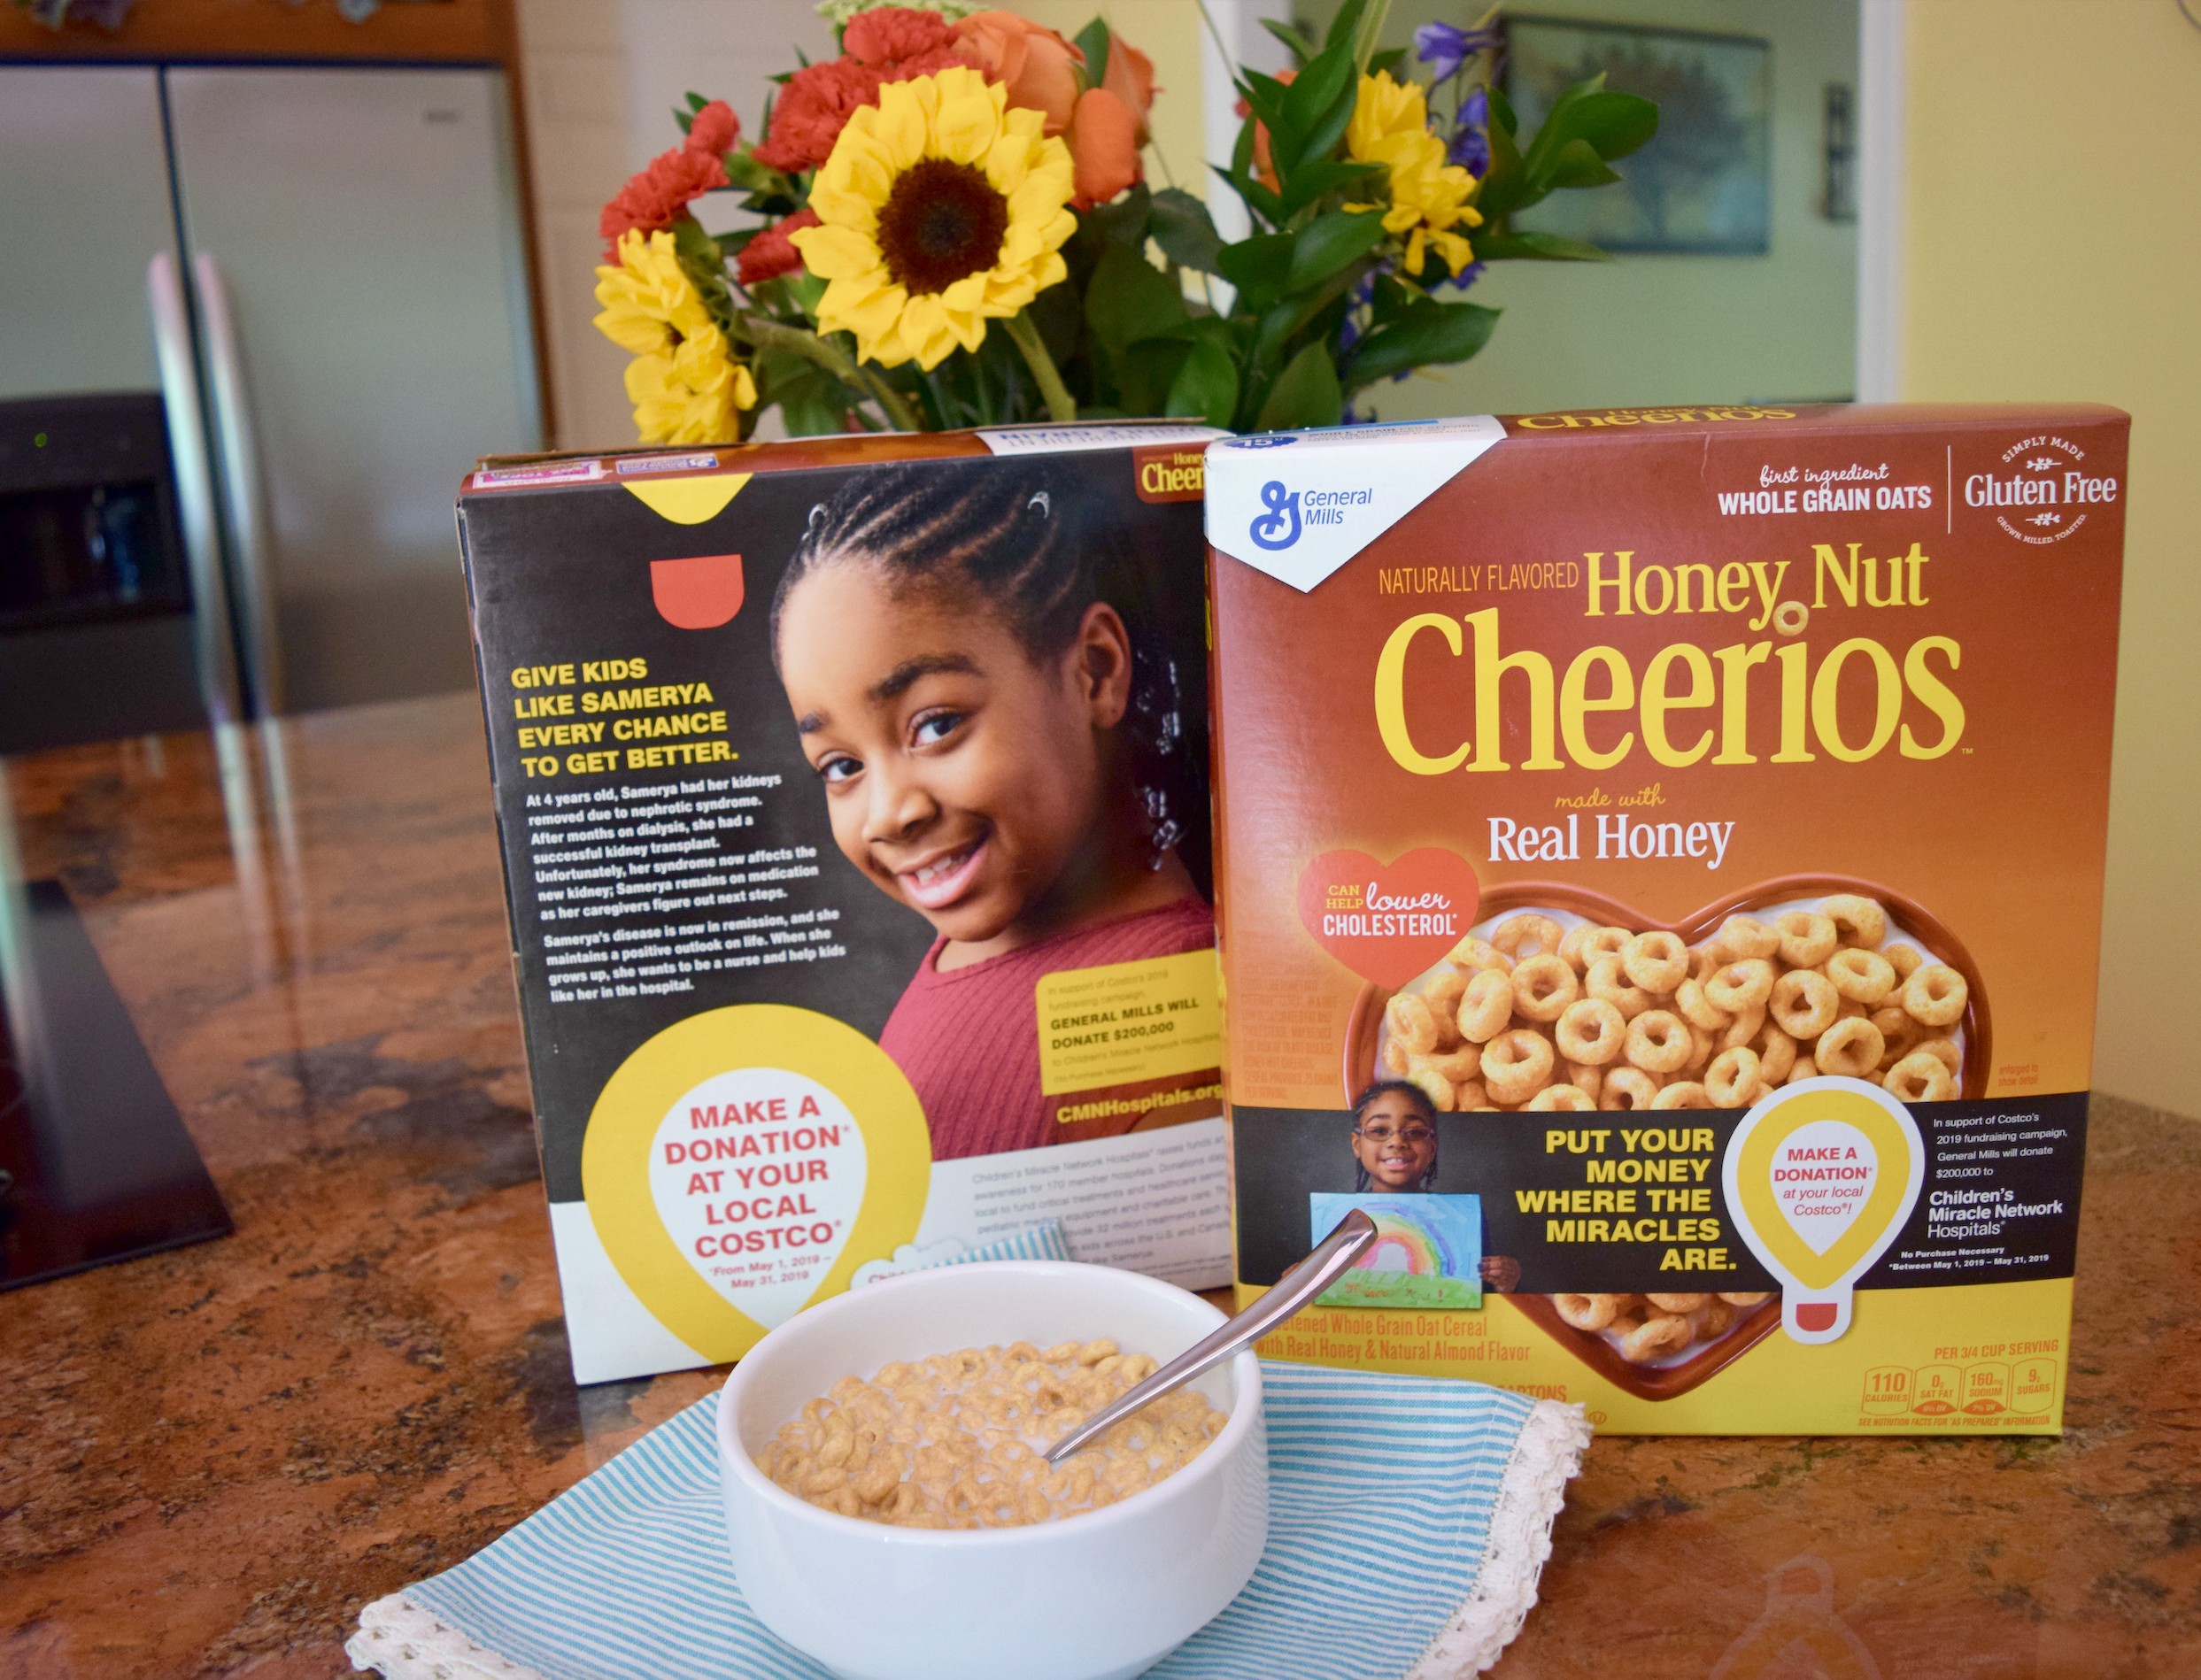 Giving back is very important to us as a family. This month of May, help a great cause for children by giving back with General Mills Cereals at Costco!